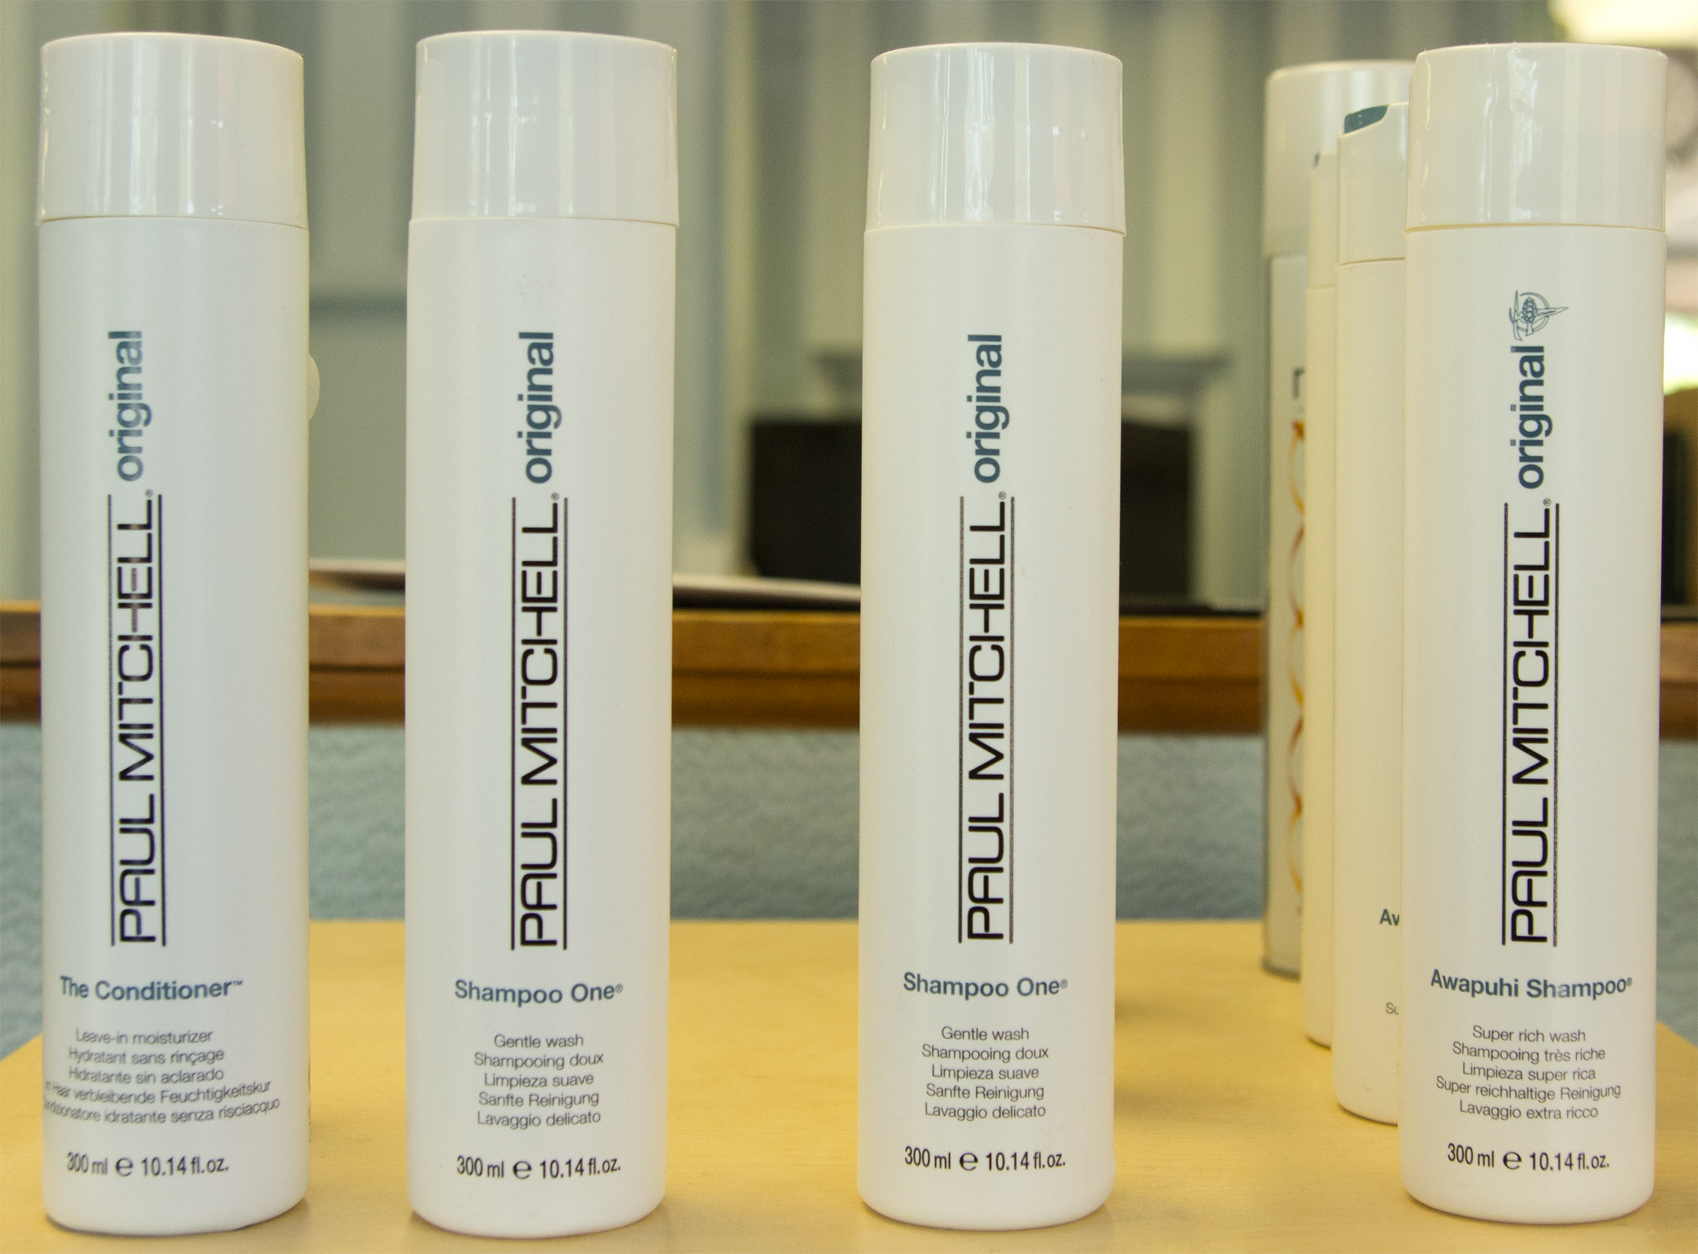 Paul Mitchell Shampoo With Images Hotel Toiletries Paul